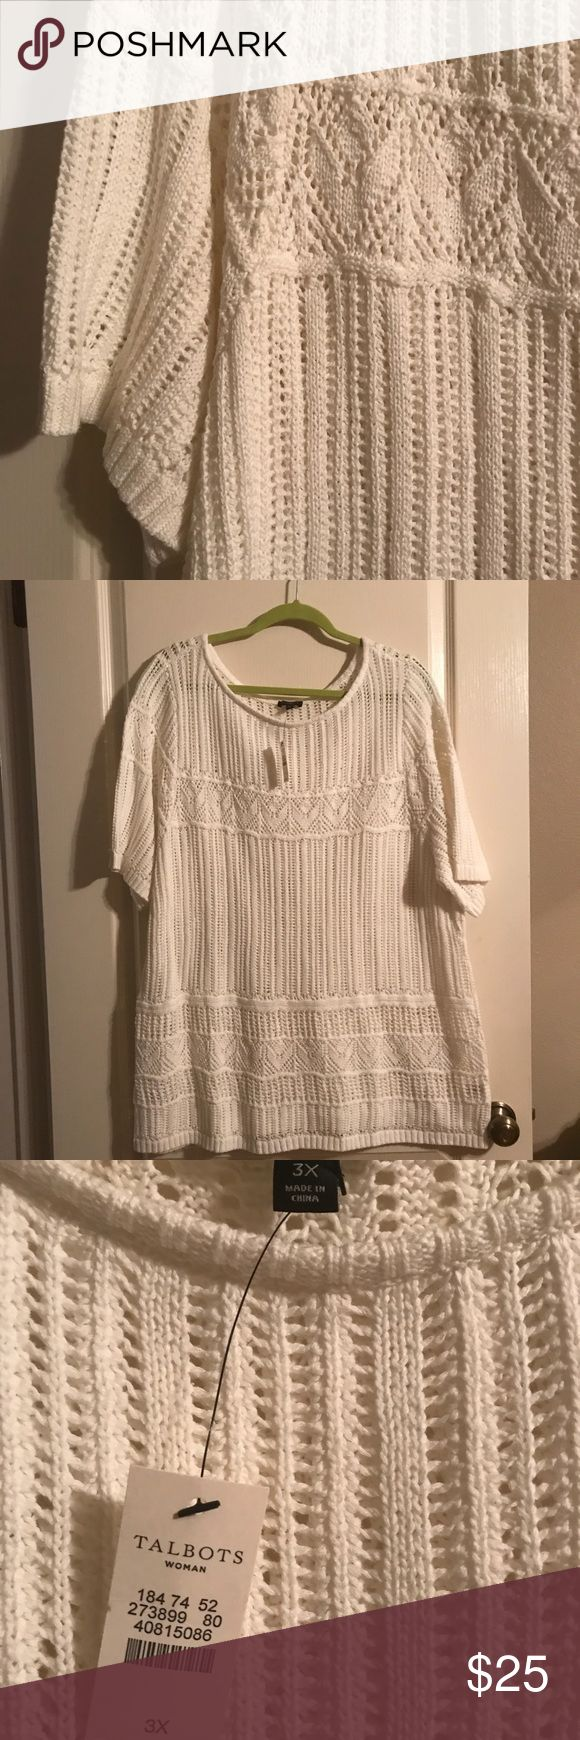 Talbots long sweater/top. Beautiful crocheted short sleeve top or tunic. Can be used for a dressy occasion or casual with jeans. Talbots Tops